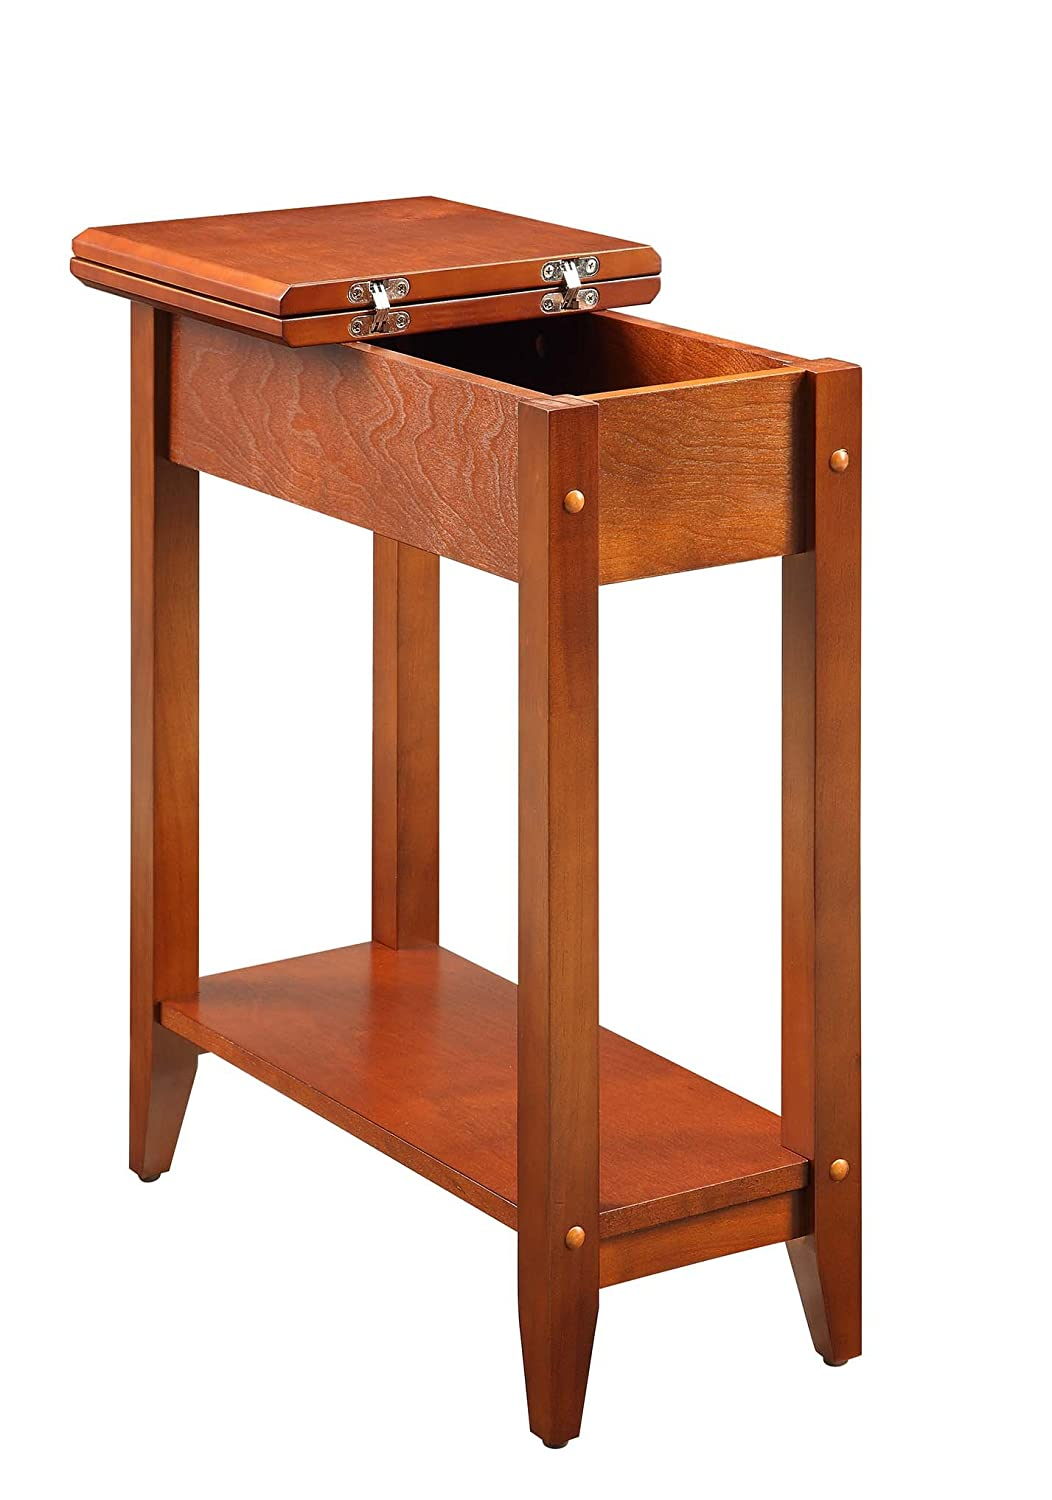 Flip top side table - Amazon Com Convenience Concepts American Heritage Flip Top End Table Cherry Home Kitchen